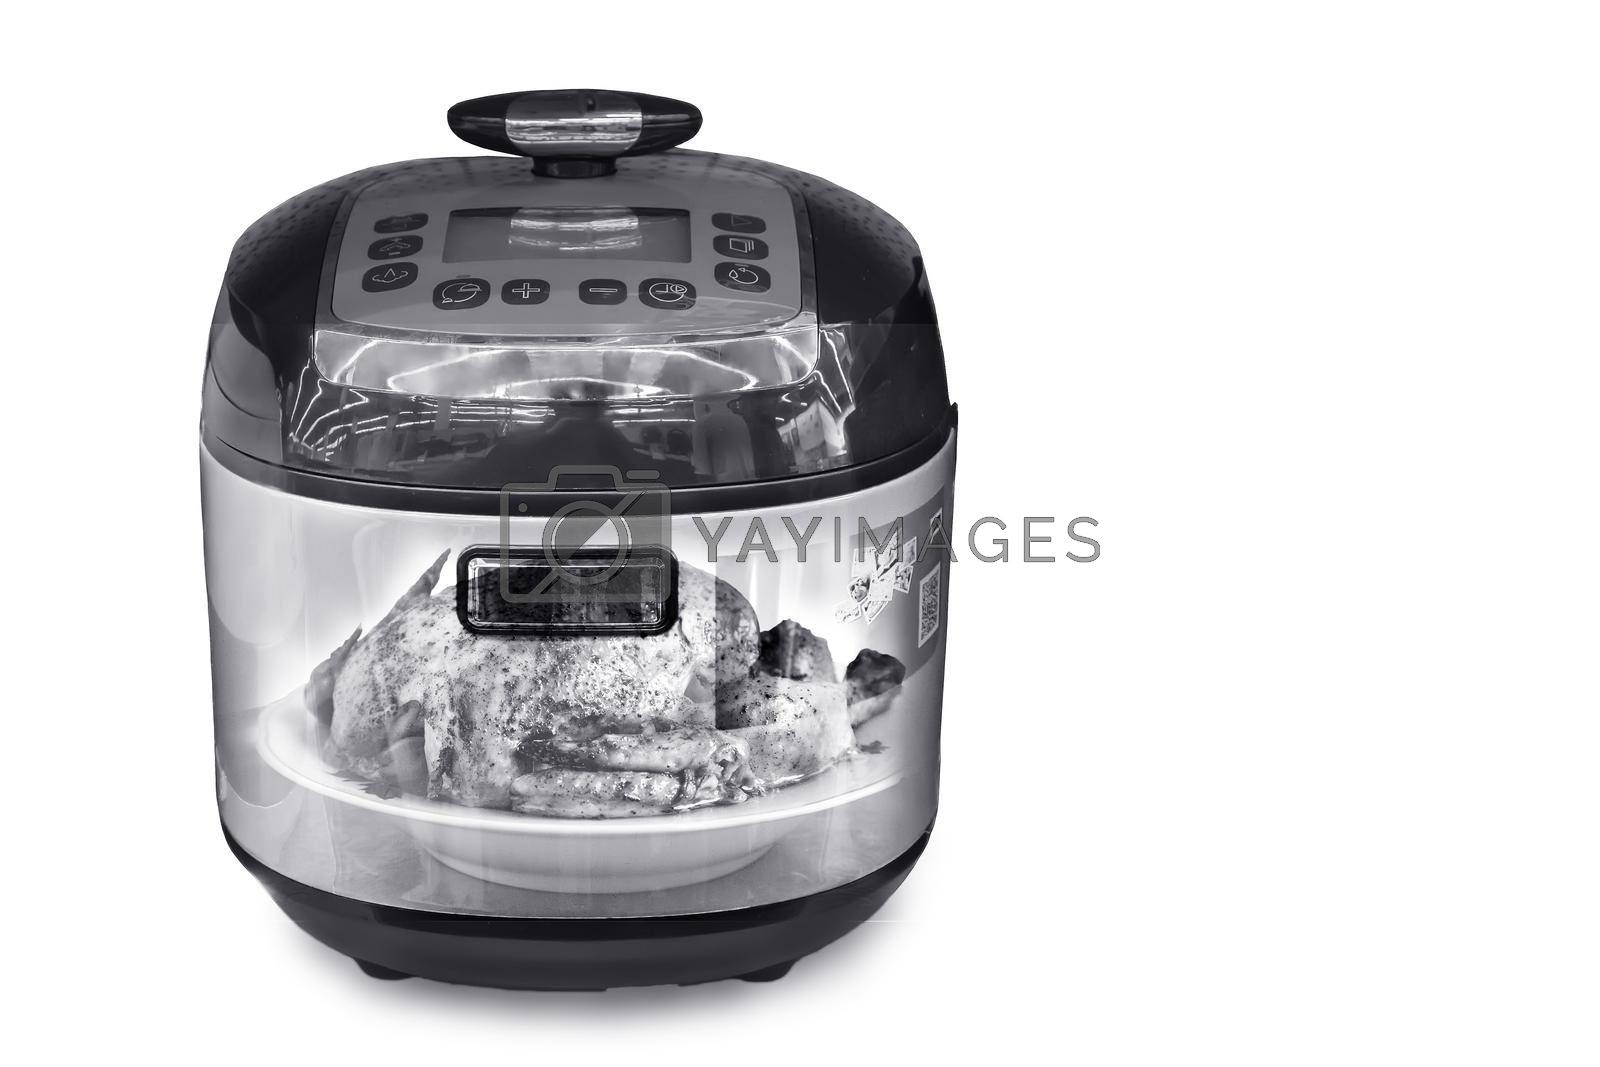 Royalty free image of The slow cooker on a white background. The double exposure effec by georgina198